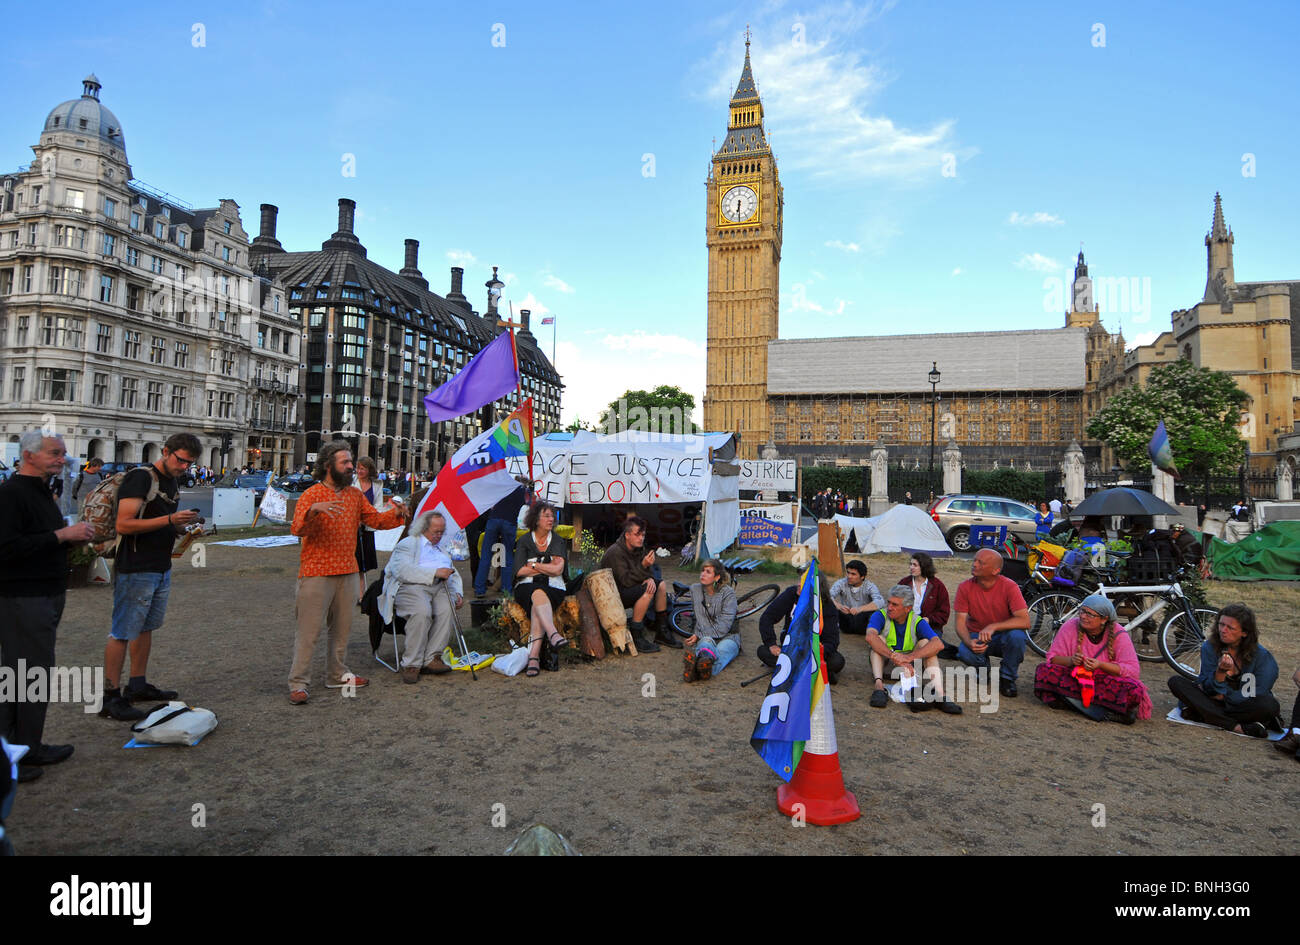 Protest camp at 'Parliament Square', Westminster, London, Britain, UK, July 2010 - Stock Image